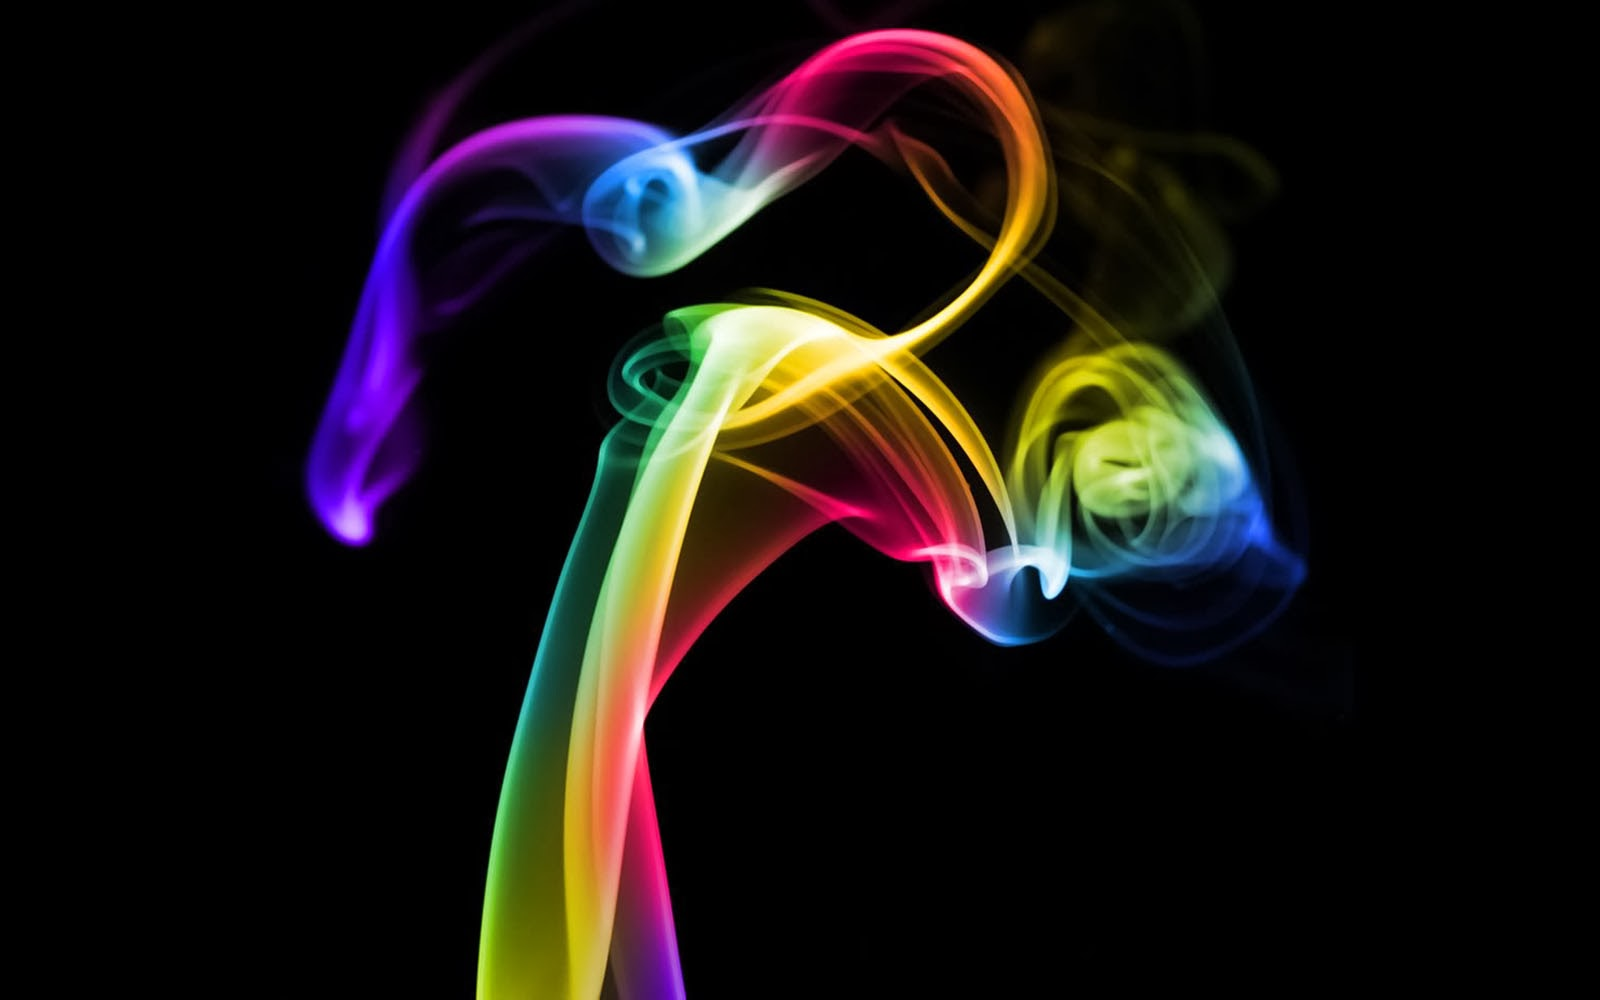 Smoke Wallpapers Colorful Smoke DesktopWallpapers Colorful Smoke 1600x1000